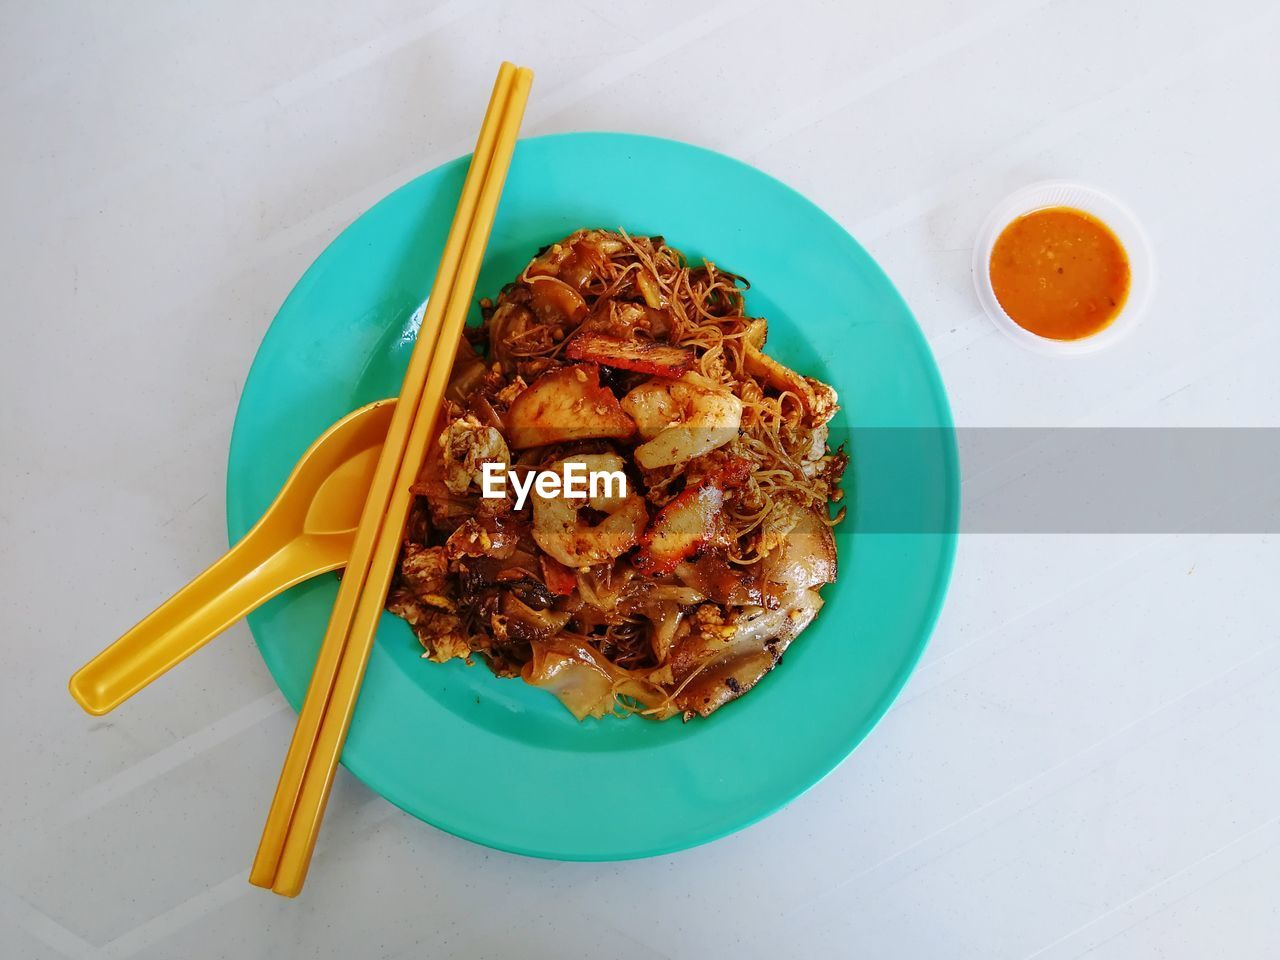 food, food and drink, freshness, ready-to-eat, pasta, table, still life, italian food, wellbeing, healthy eating, meat, serving size, plate, indoors, chopsticks, high angle view, no people, meal, bowl, kitchen utensil, dinner, chinese food, temptation